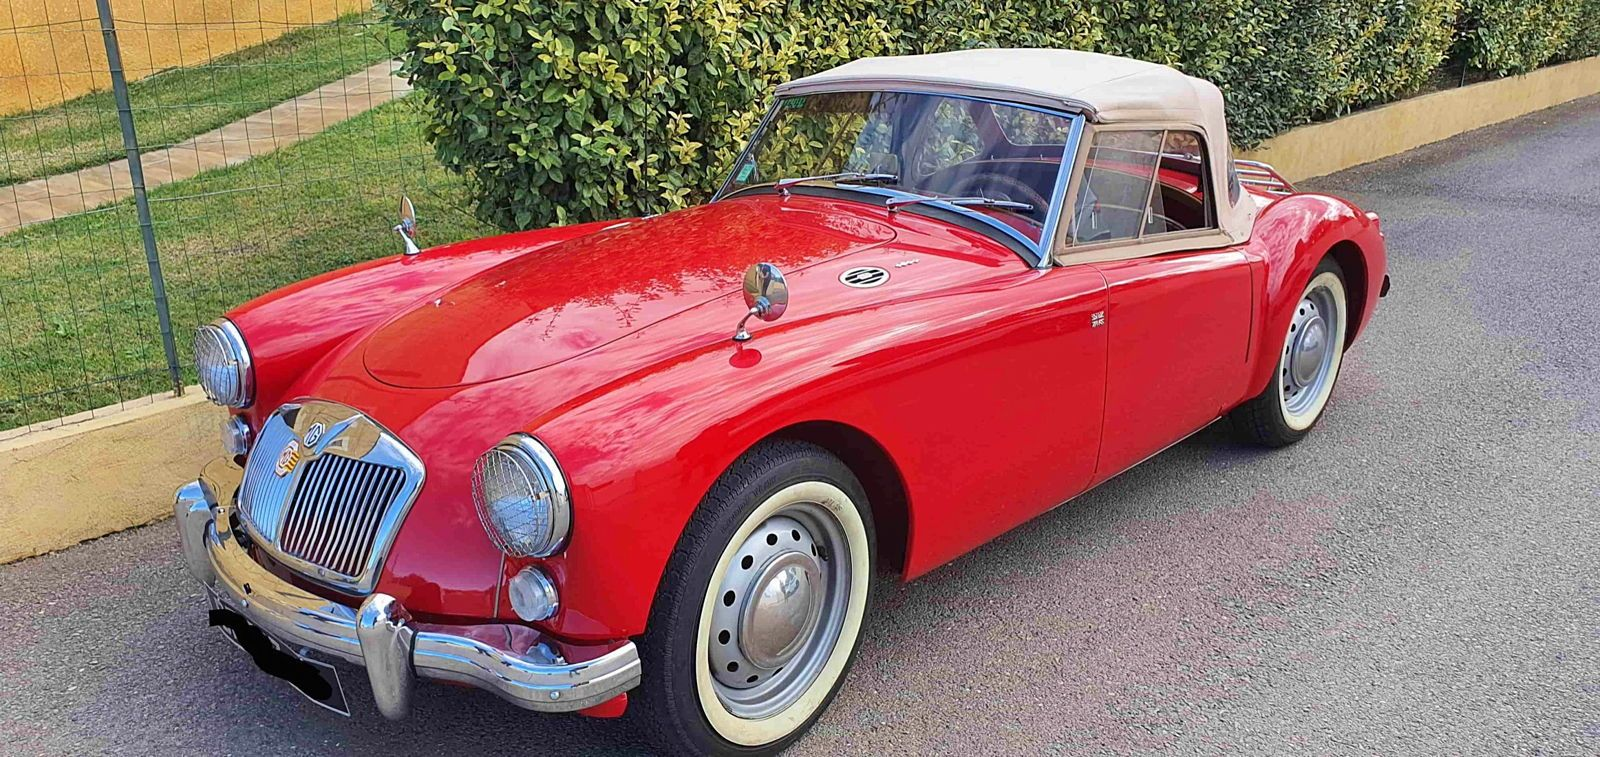 Vends MGA 1600 Roadster - 1961